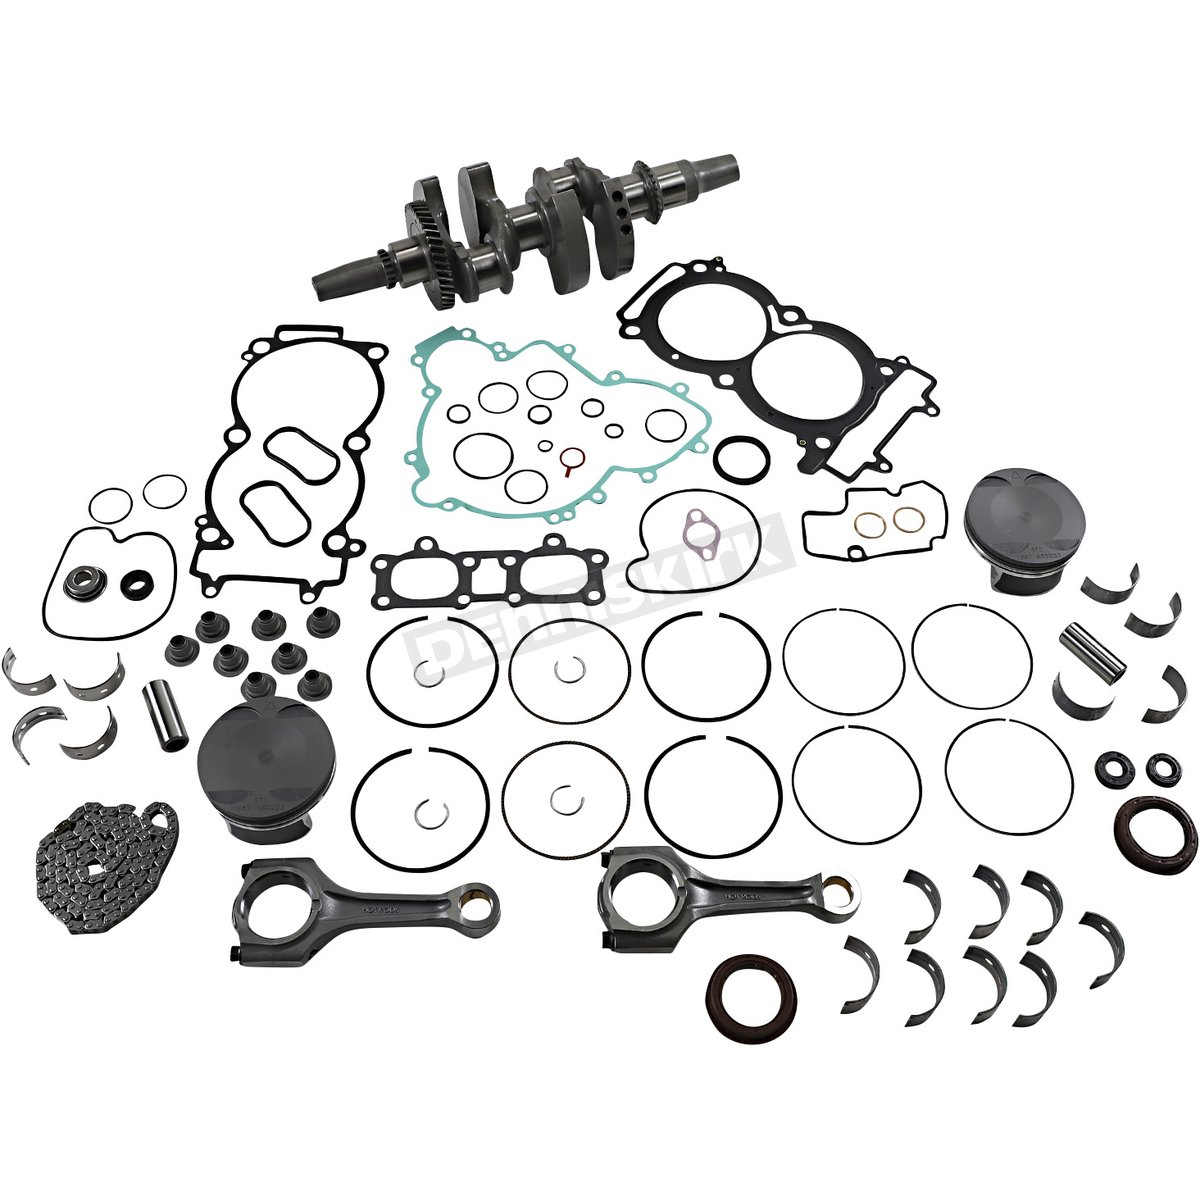 Wrench Rabbit Complete Engine Rebuild Kit 93mm Bore